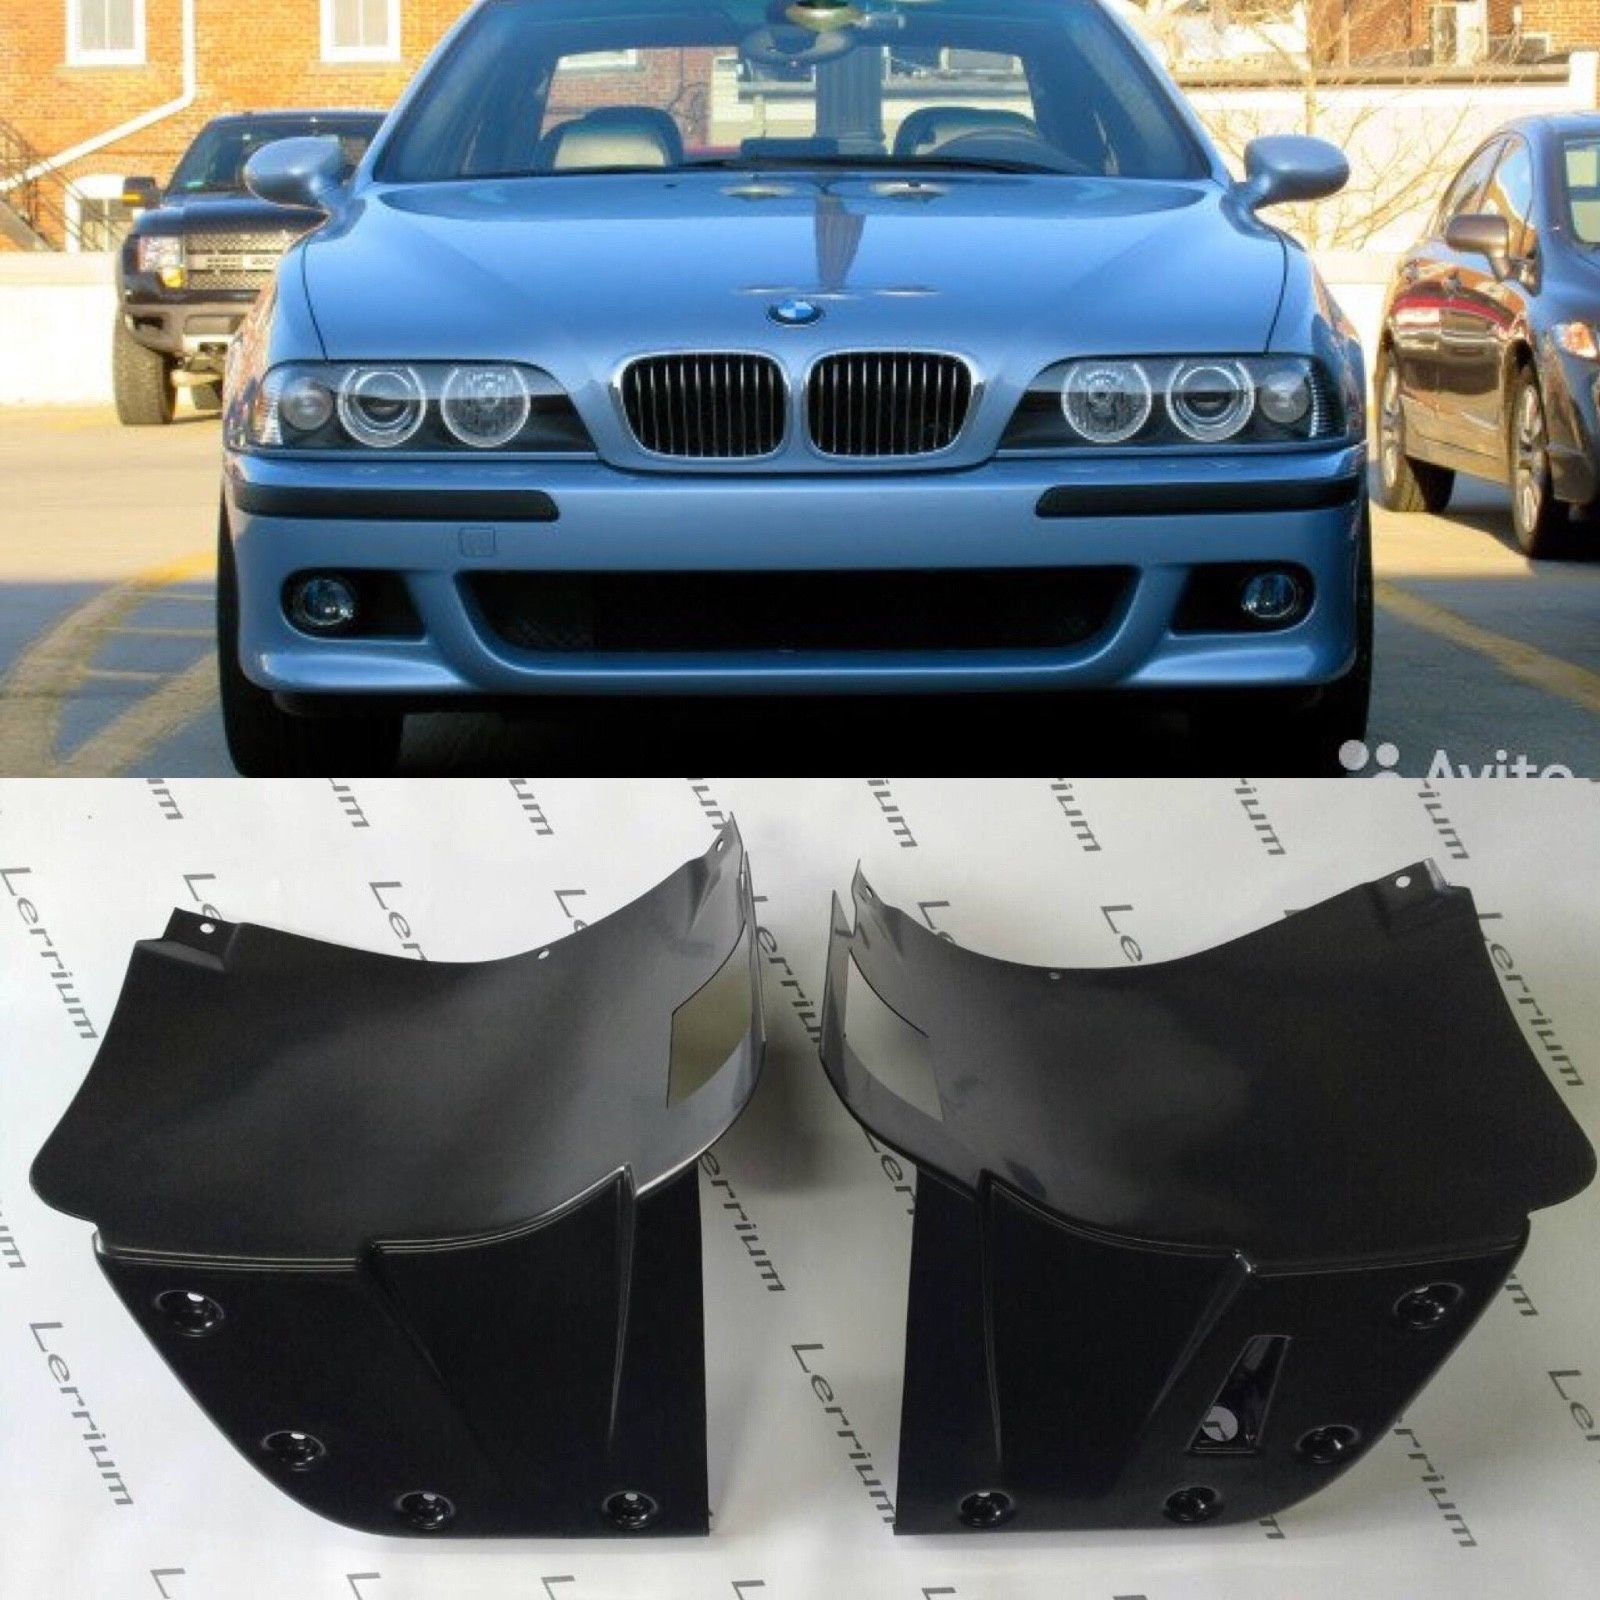 bmw e39 m5 l r vorne form m sto stange spritzer panel liner etsy. Black Bedroom Furniture Sets. Home Design Ideas